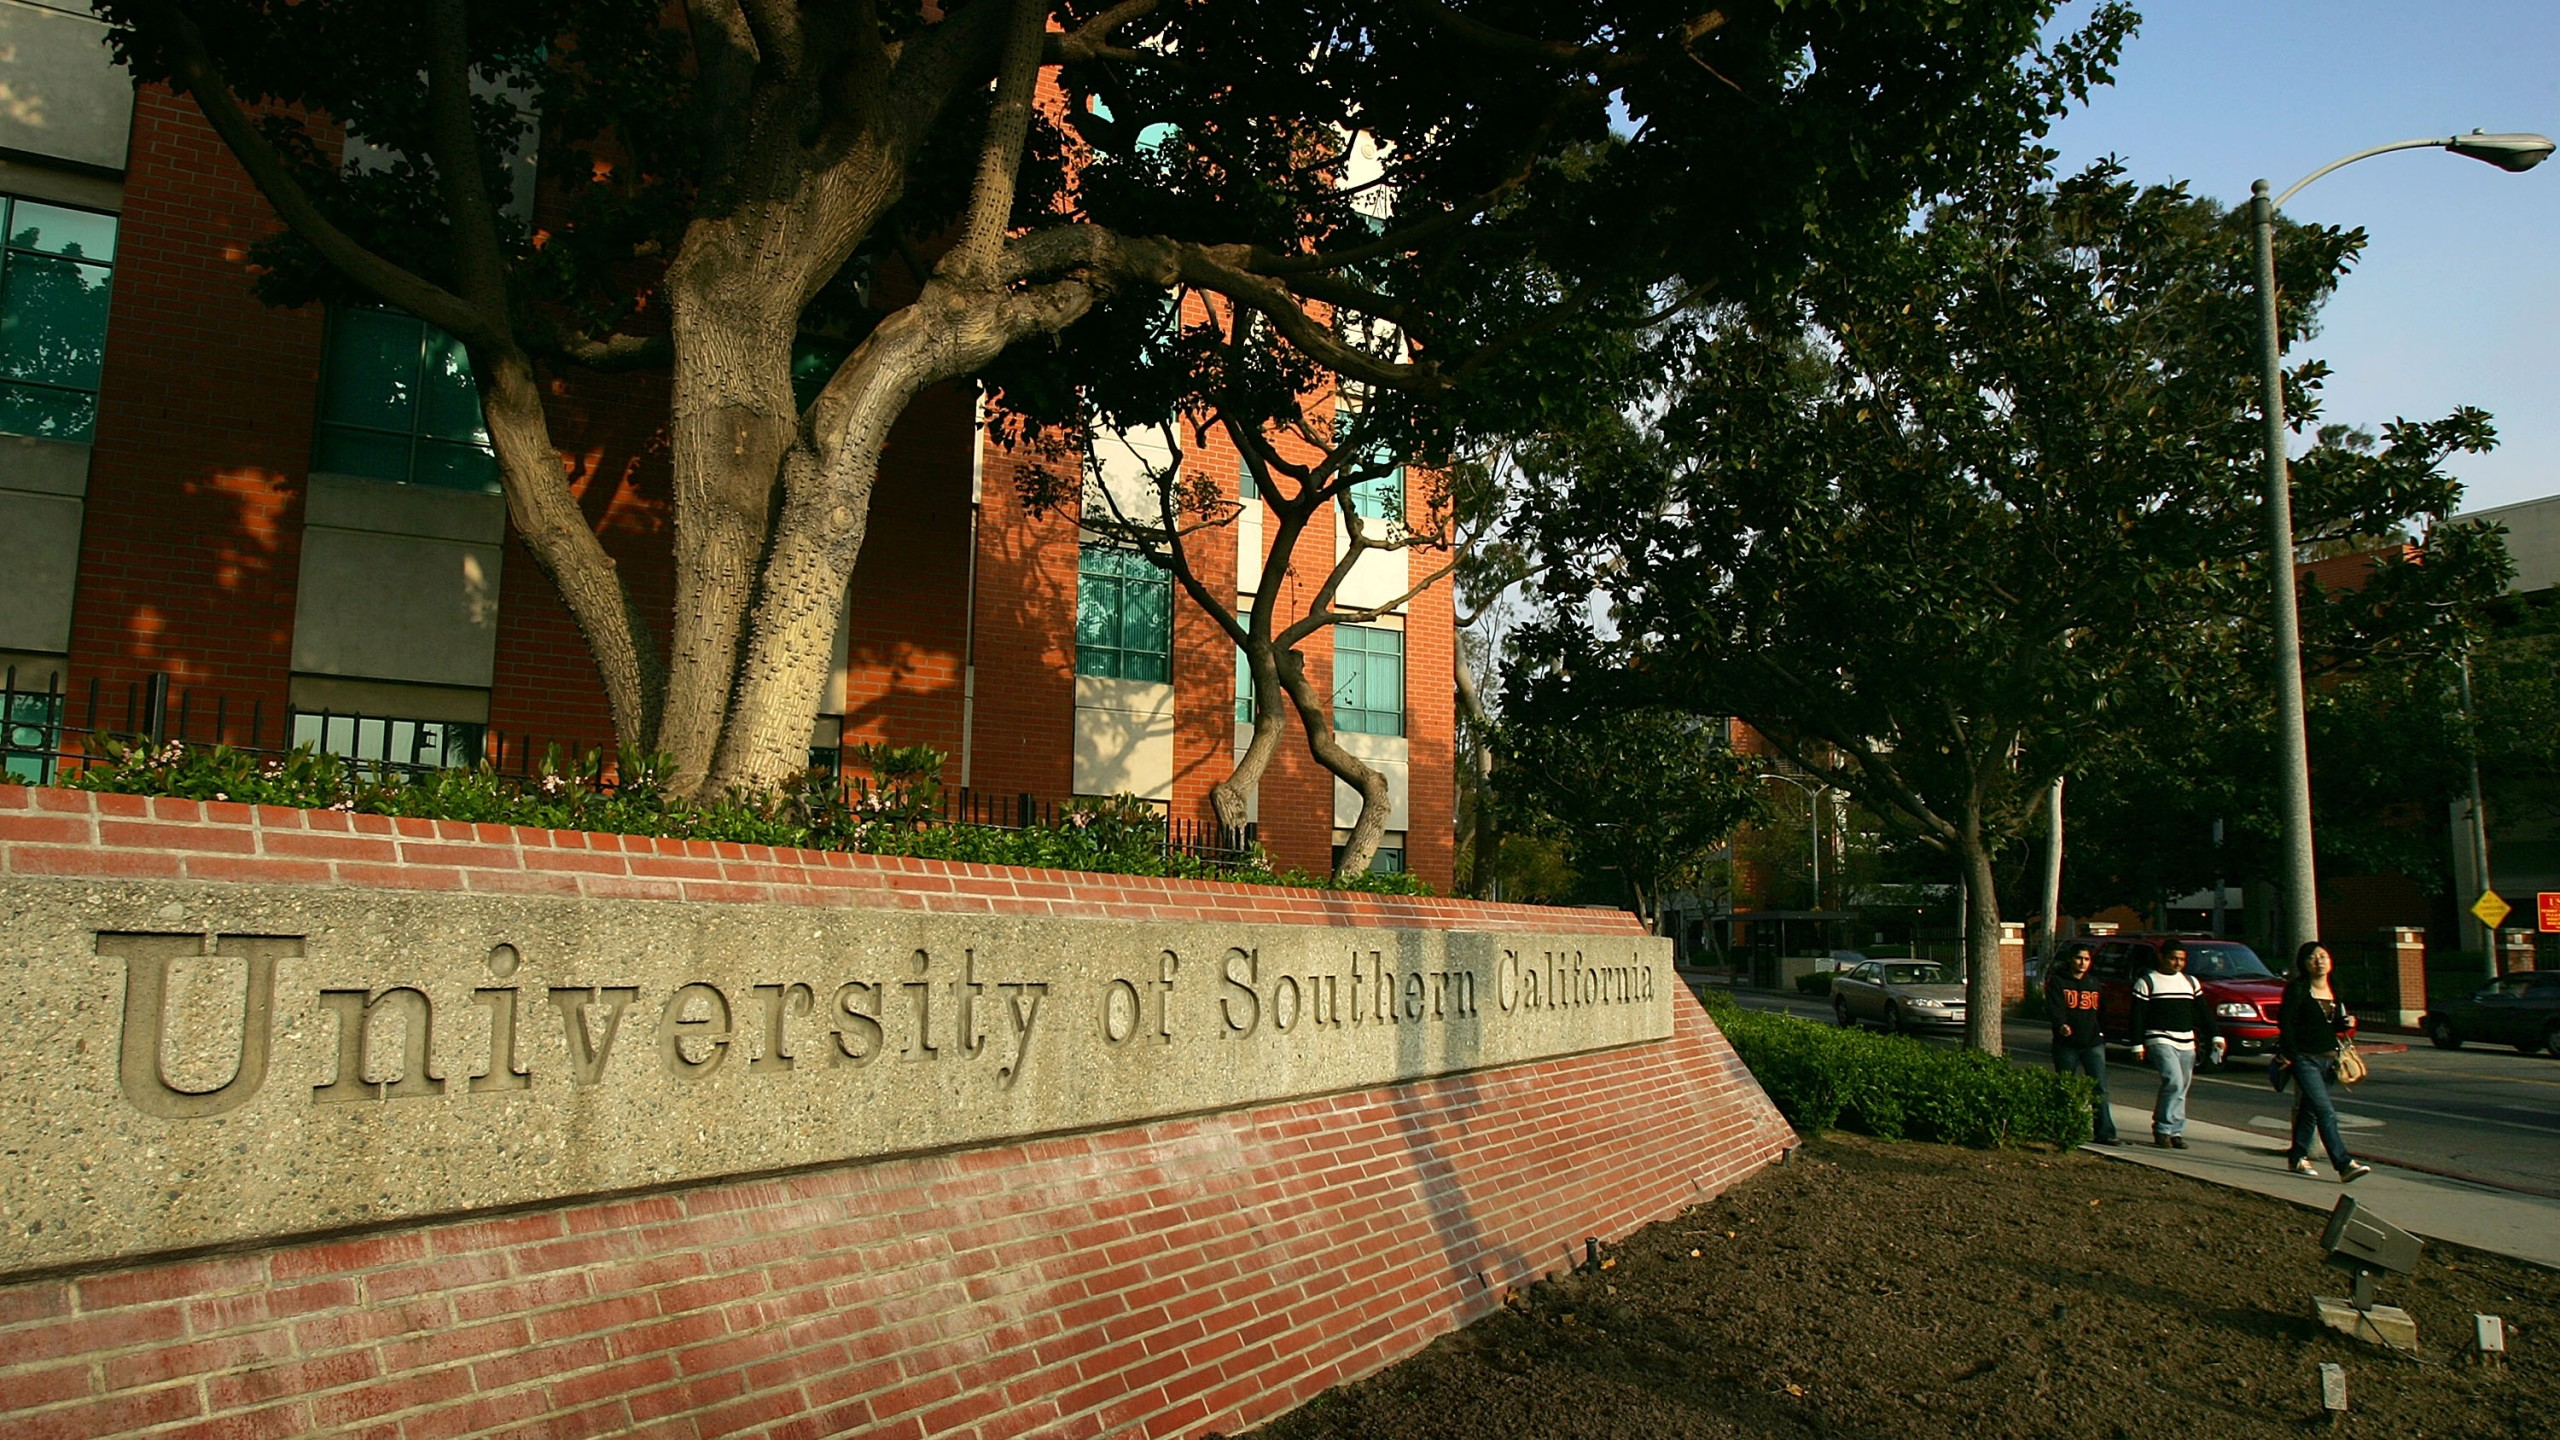 An entrance to the University of Southern California campus is seen in this file photo. (Credit: David McNew/Getty Images)